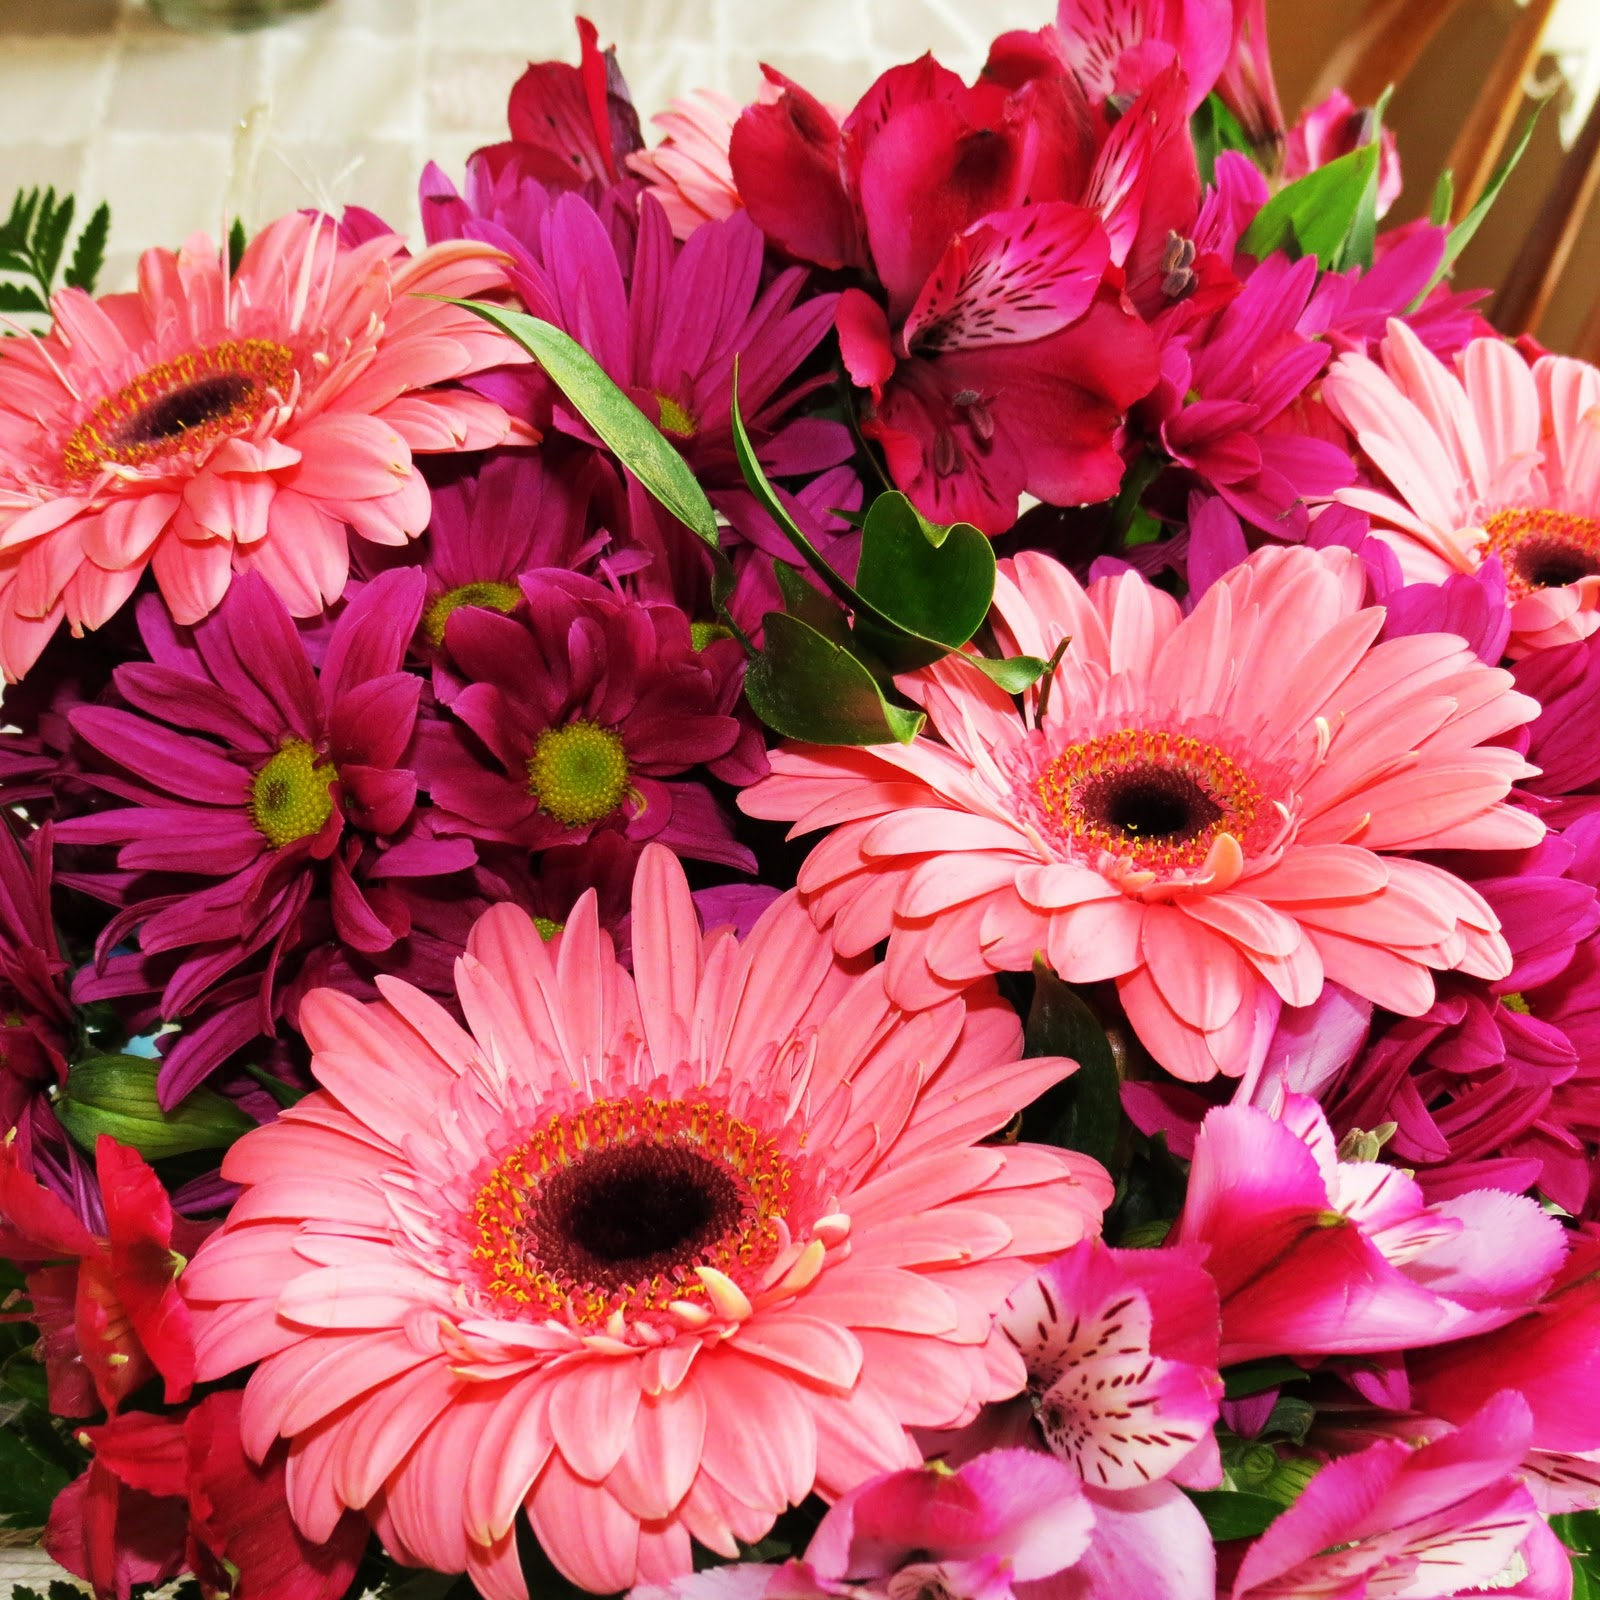 Flower Bouquets For Birthdays Beautiful Flowers